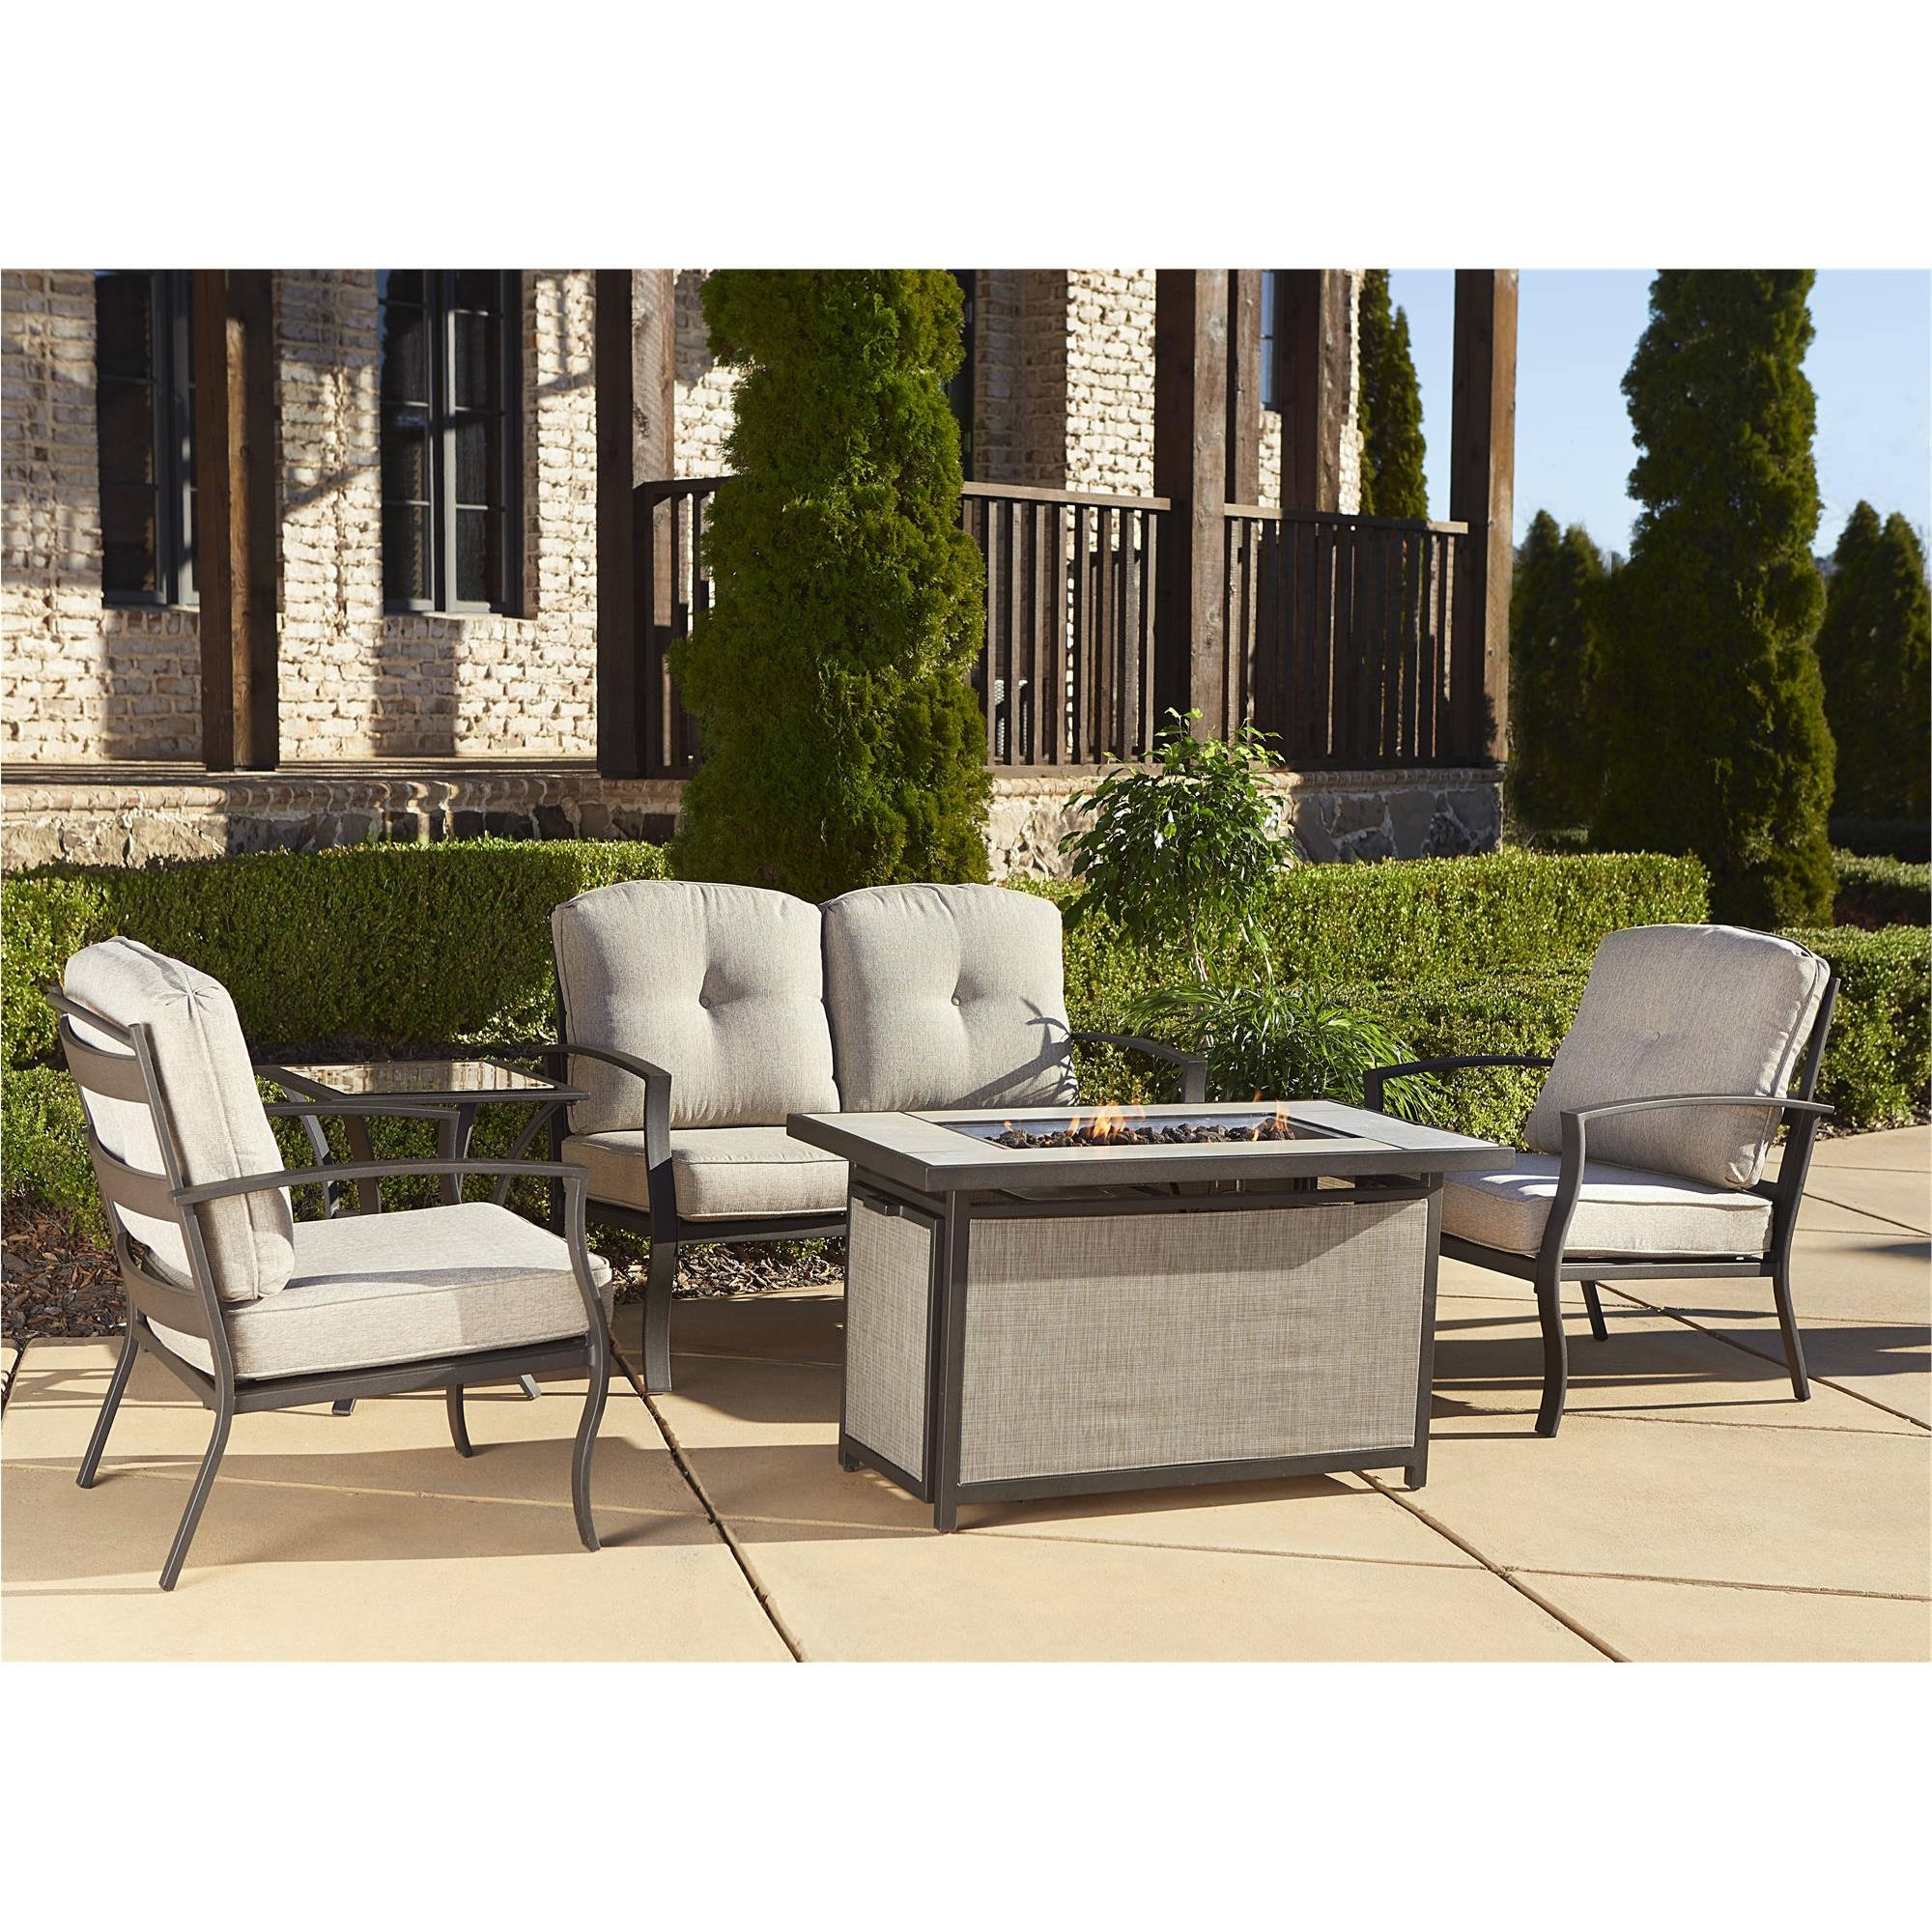 Dot Patio Conversation Sets Within Well Known Cosco Outdoor 5 Piece Serene Ridge Aluminum Patio Furniture (View 6 of 15)